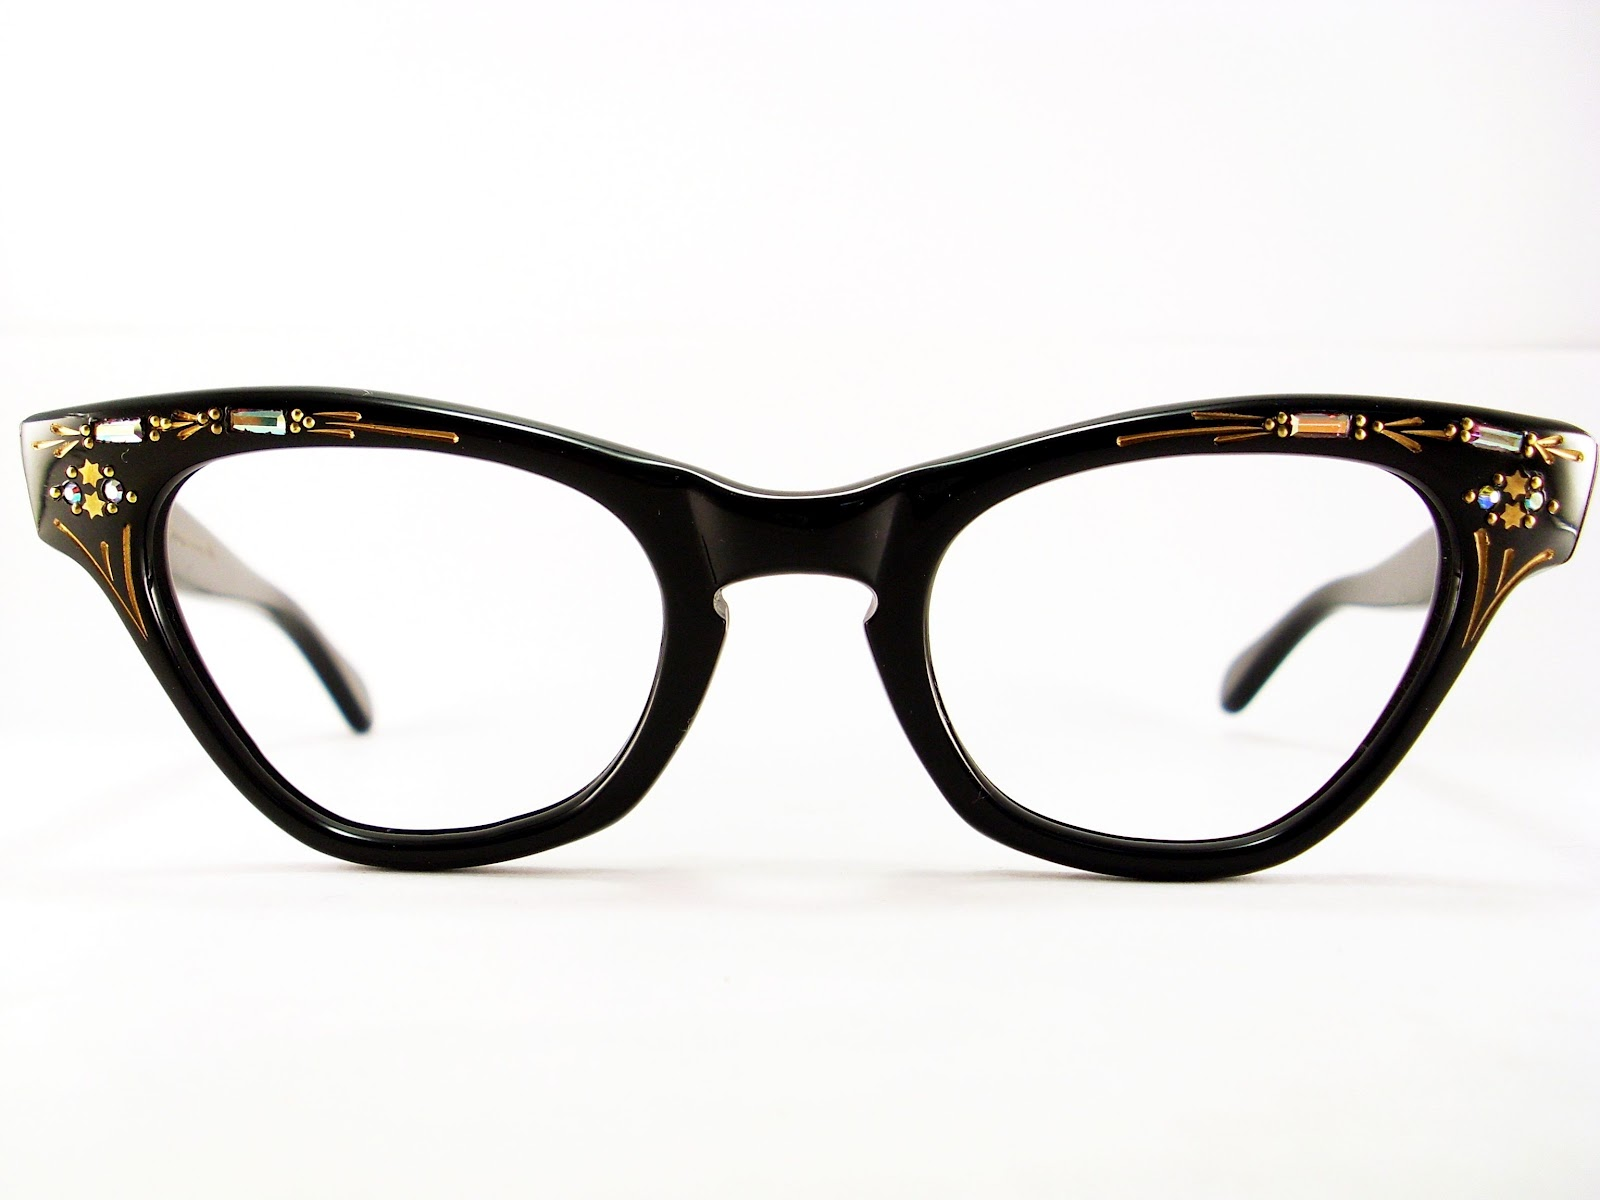 Vintage Black Frame Glasses : Vintage Eyeglasses Frames Eyewear Sunglasses 50S: CAT EYE ...